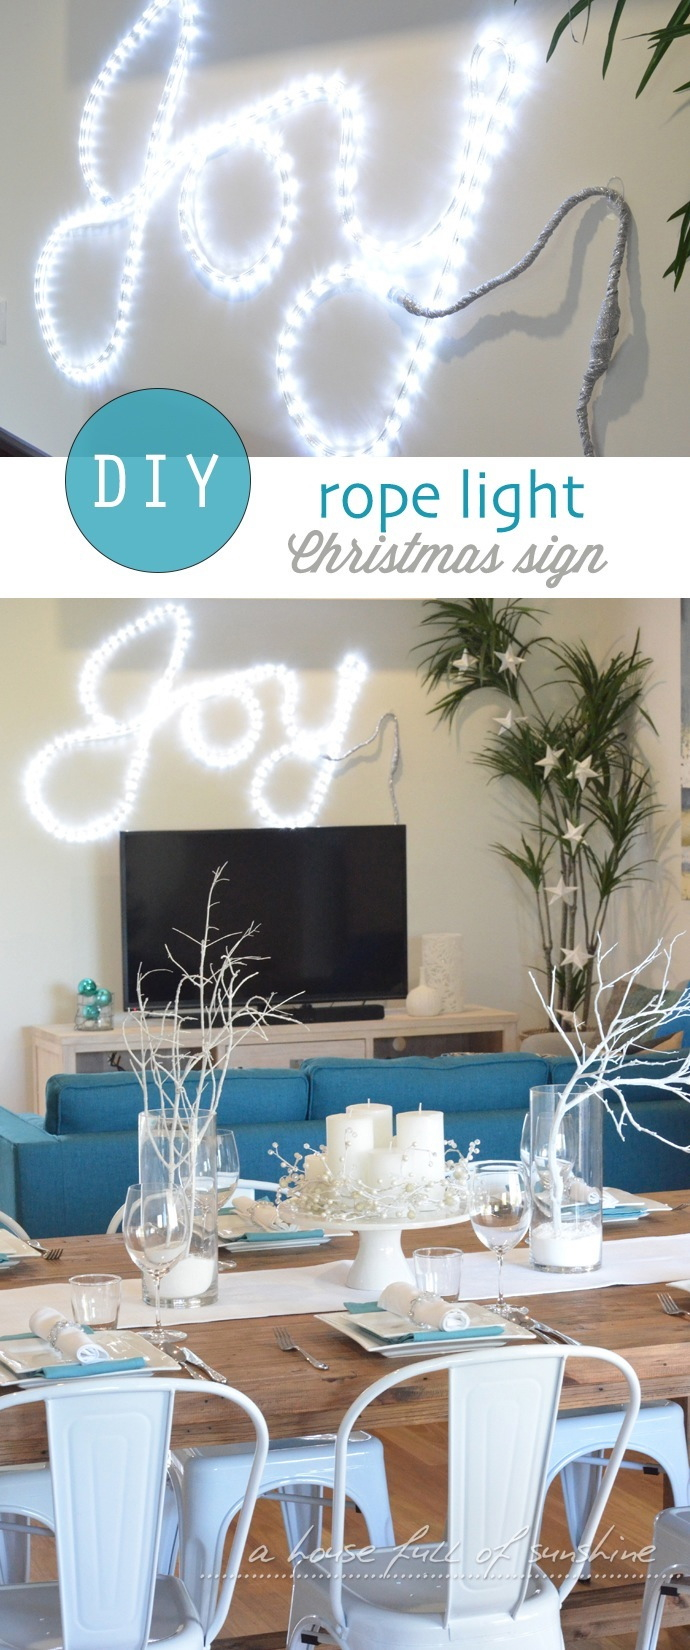 DIY rope light Christmas sign by A house full of sunshine for Practically Functional